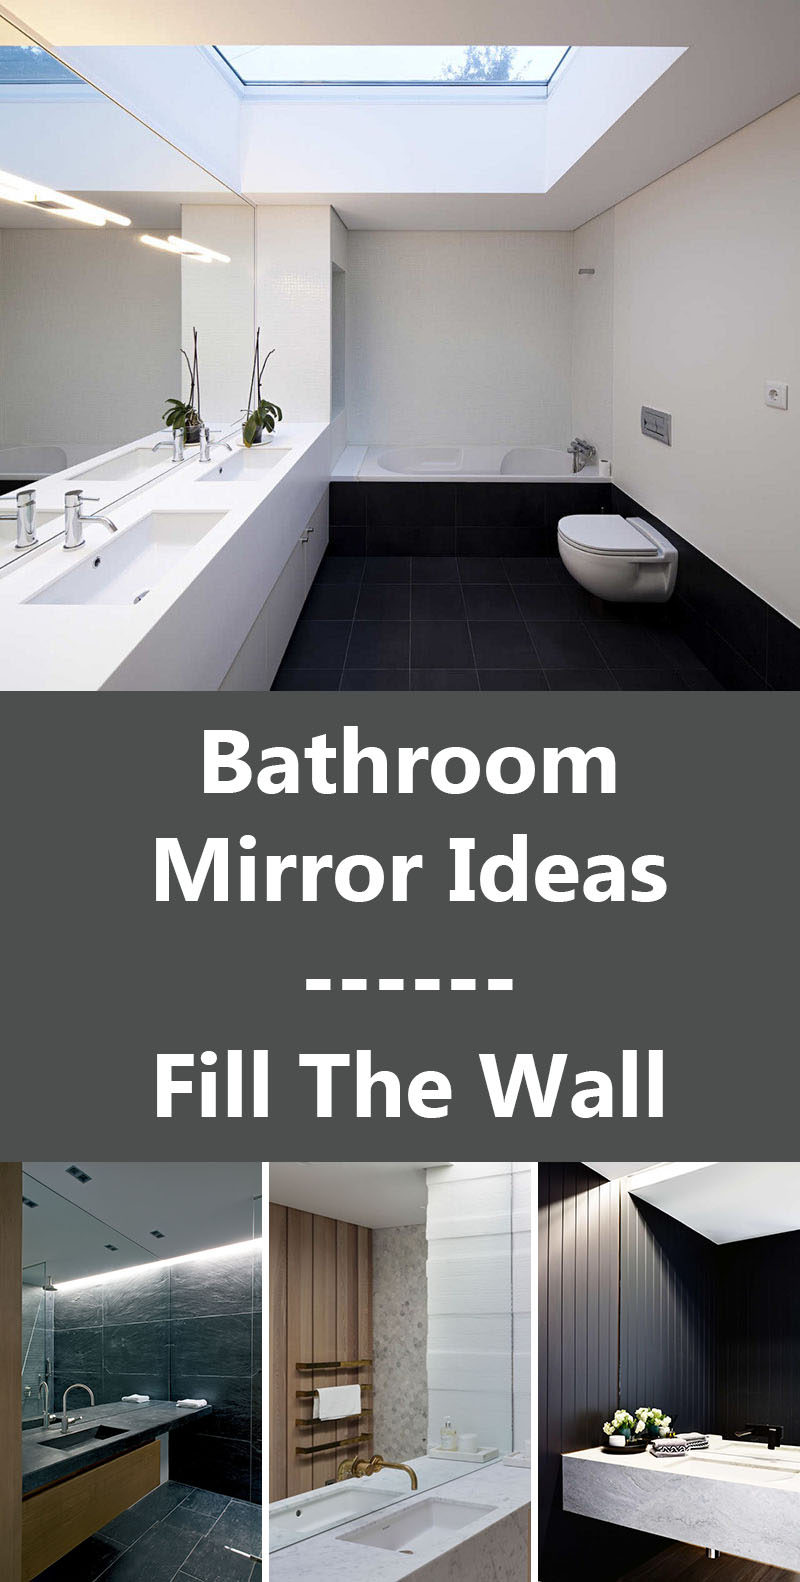 Bathroom Mirror Ideas - Fill The Wall